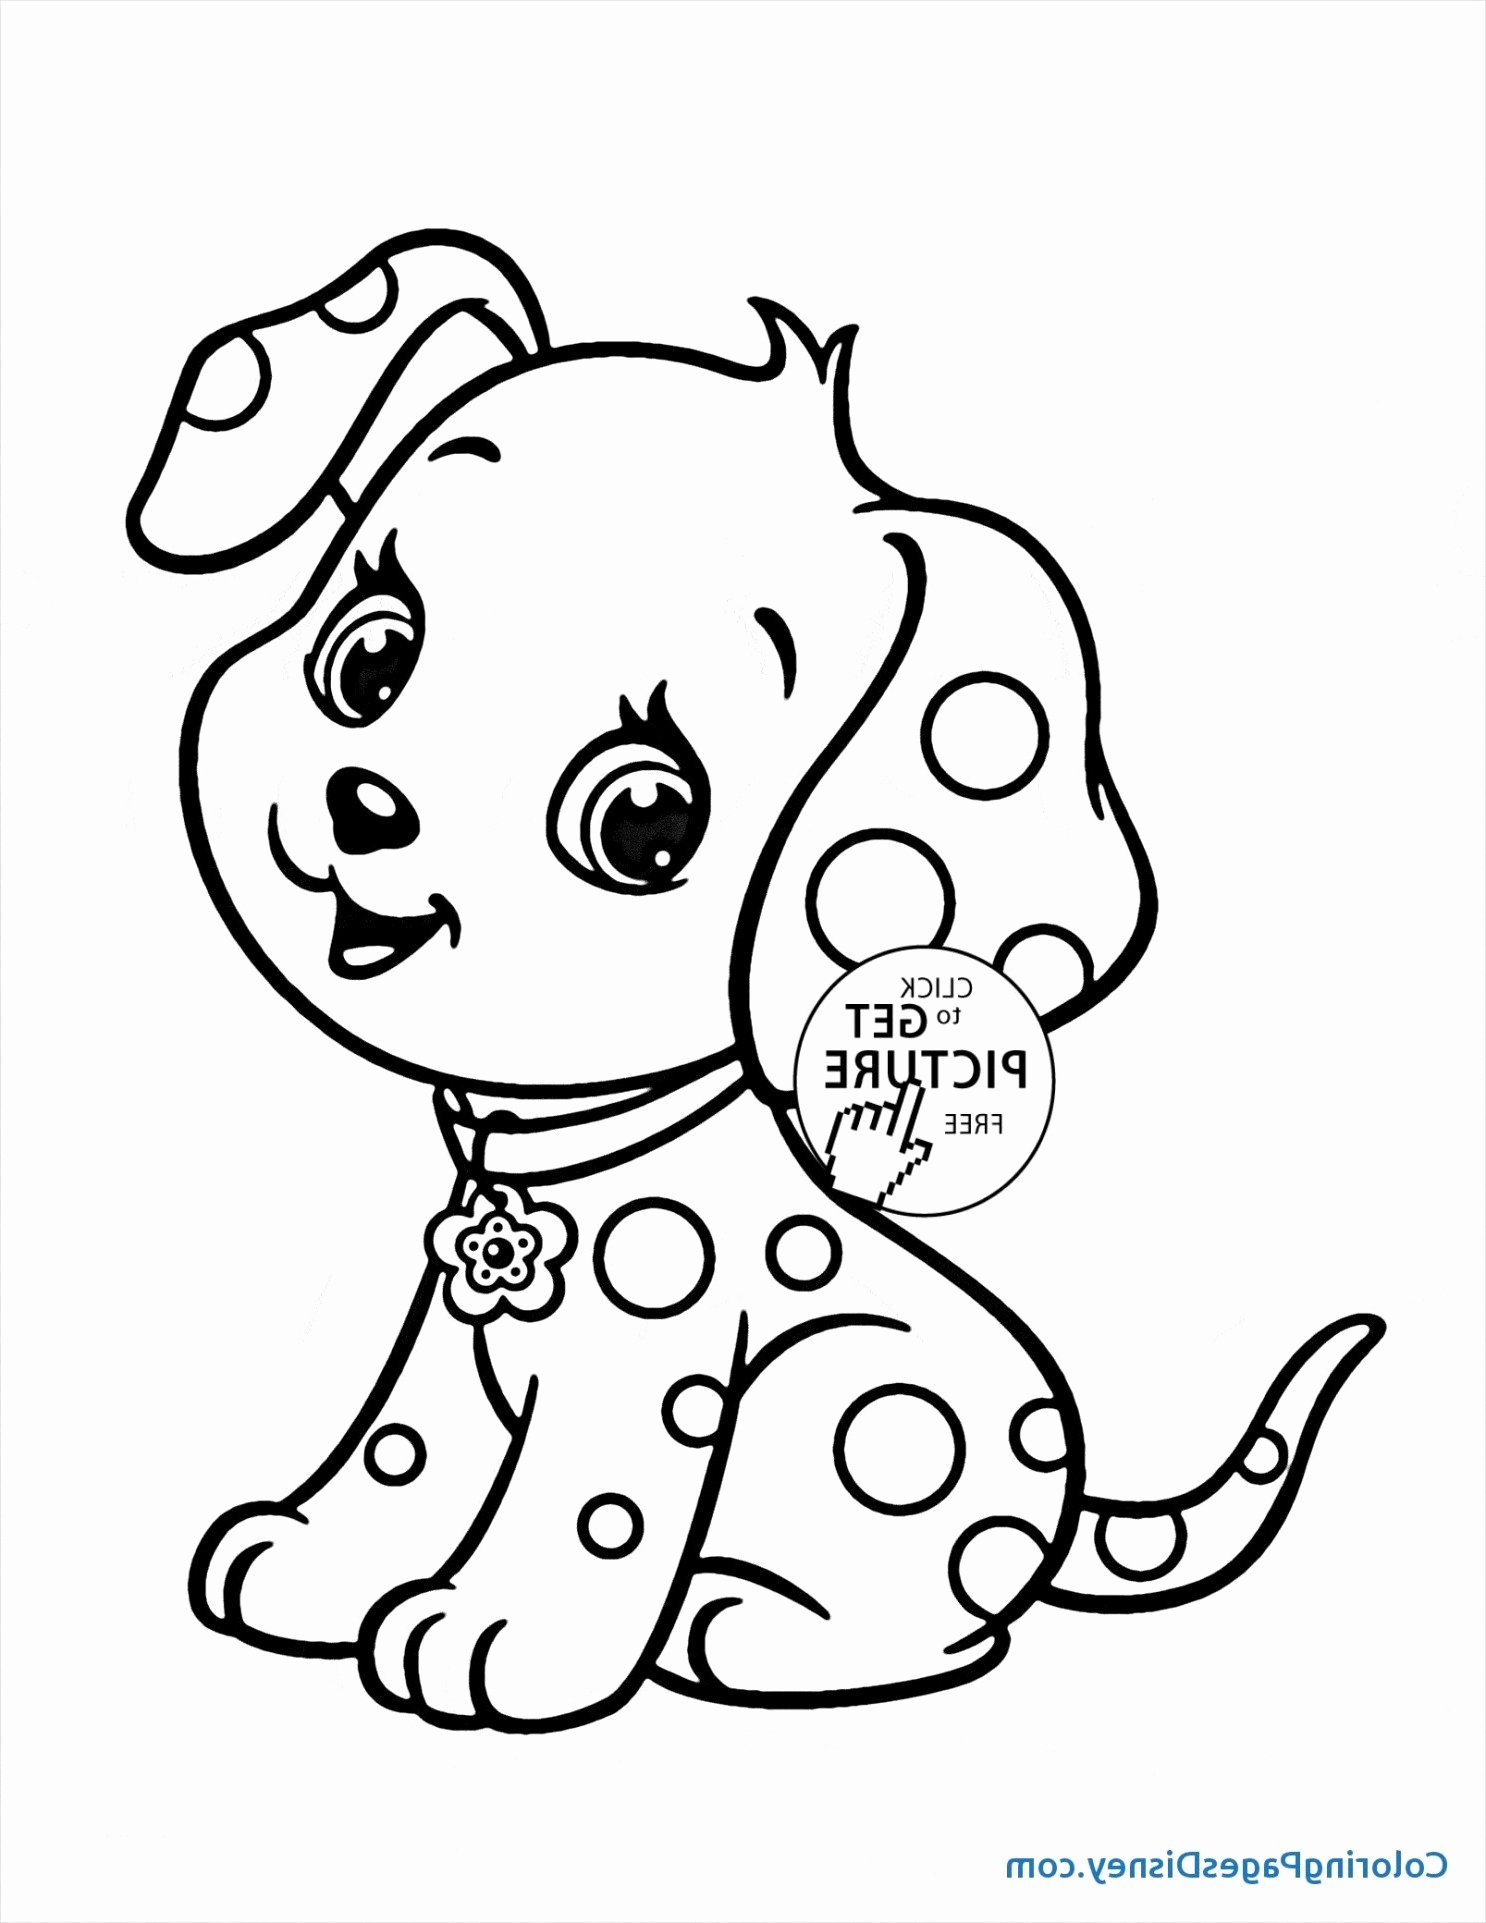 Free Coloring Worksheets for Preschoolers Free Coloring Pages Free Coloring Pages for toddlers Unique 23